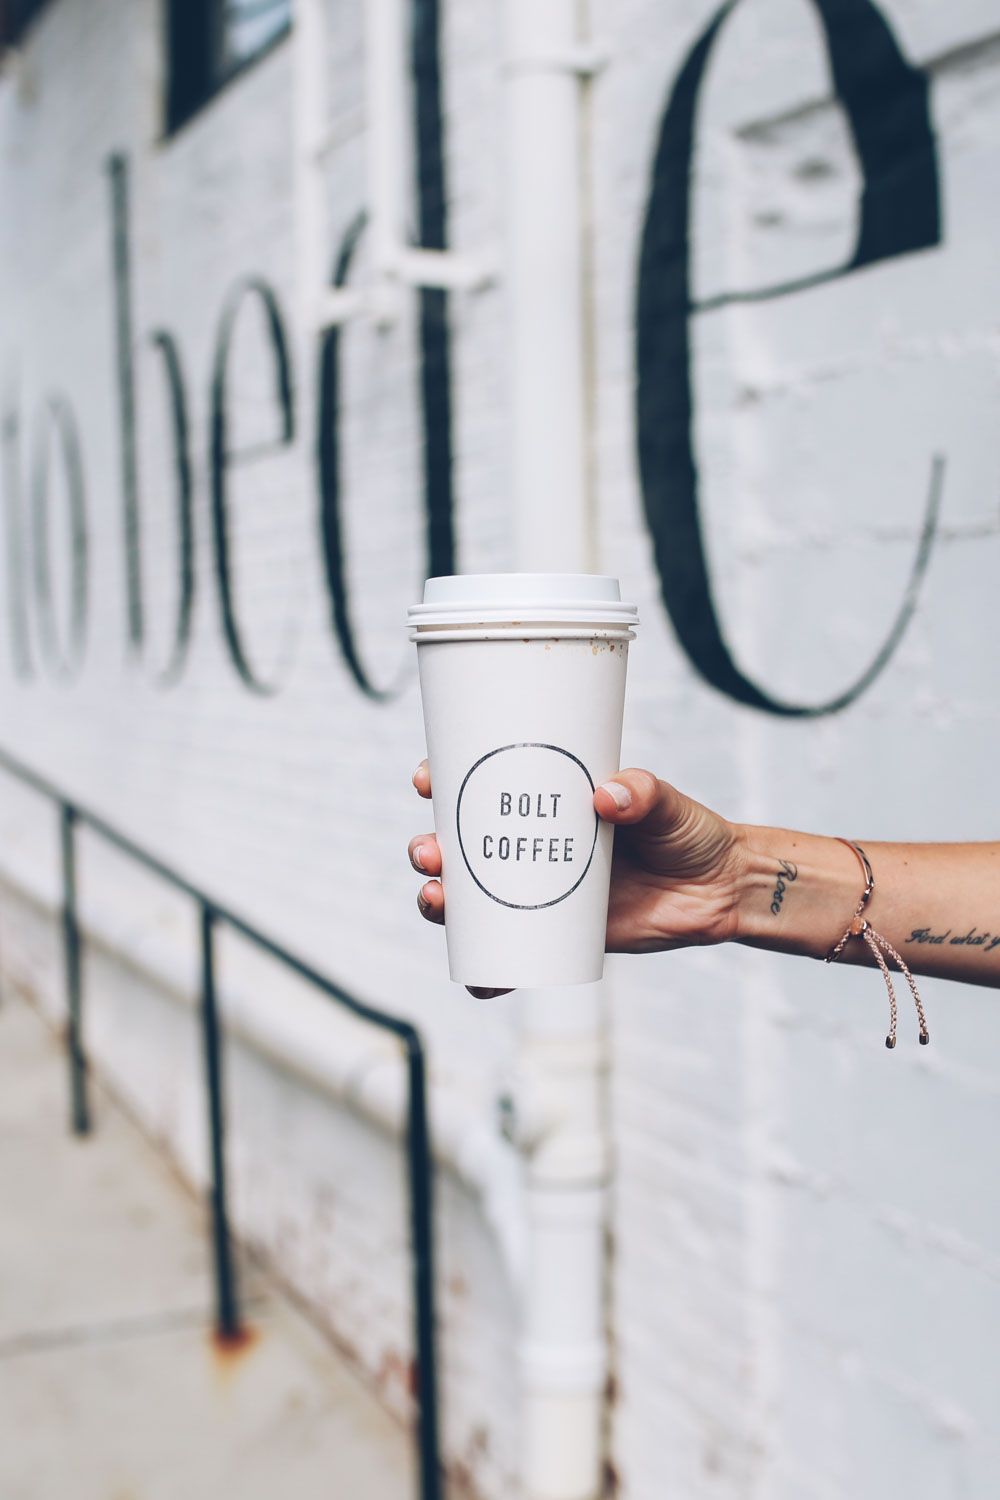 Jess Ann Kirby grabs a coffee at Bolt Coffee Co in Providence Rhode Island